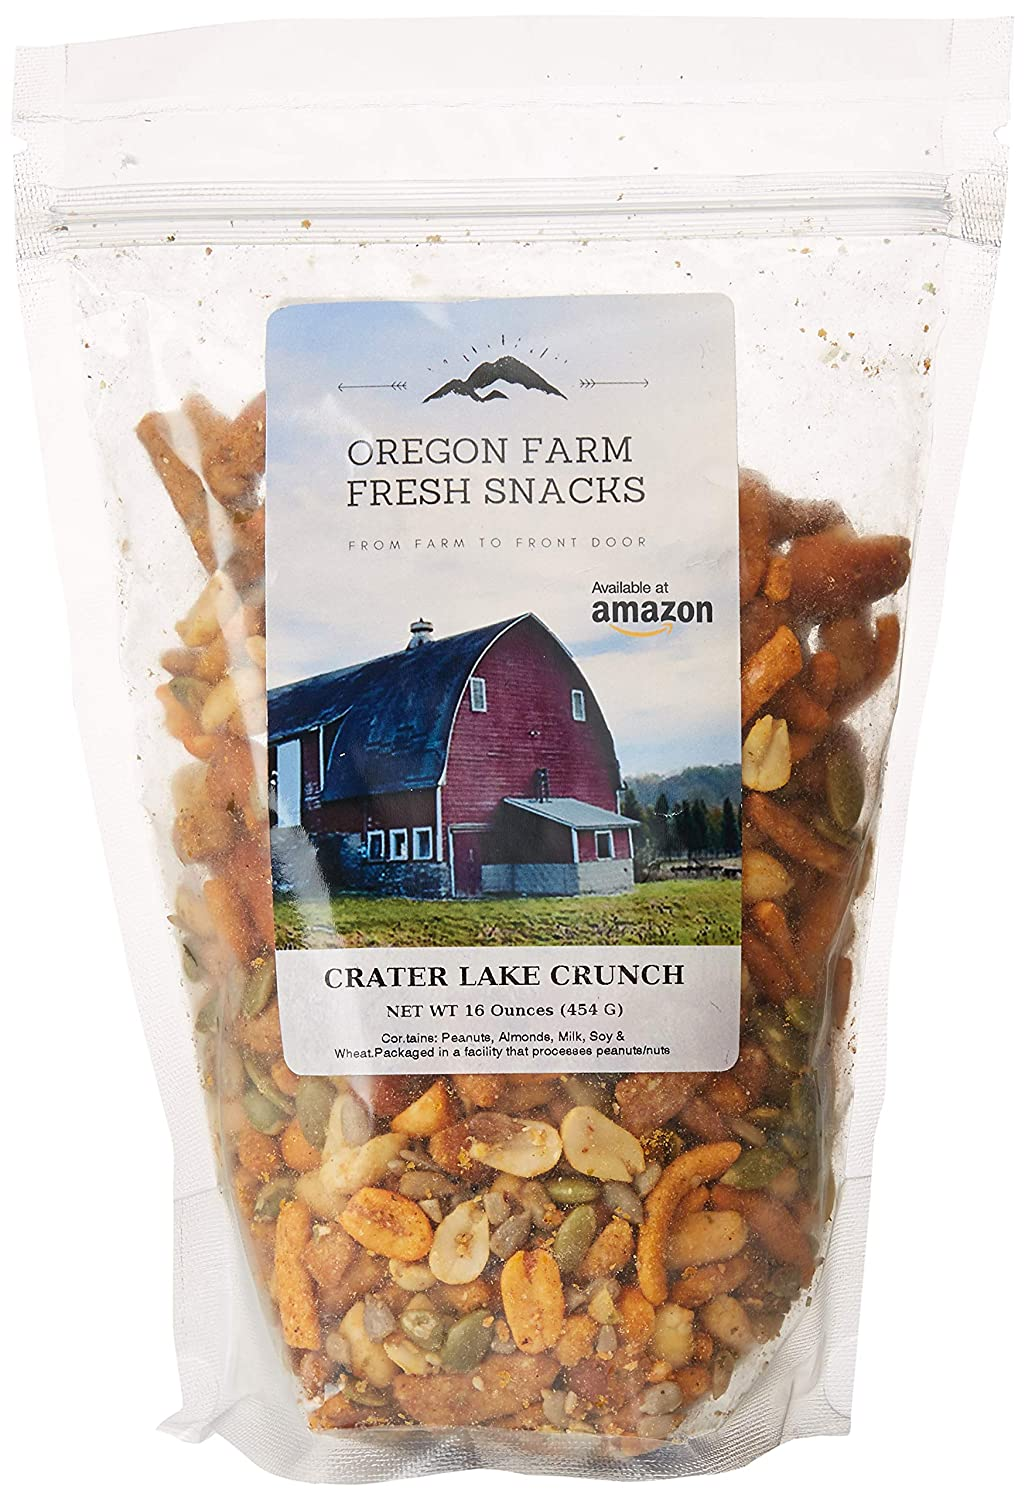 Oregon Farm Fresh Snacks Mix - Crater Lake Crunch - Spicy Pub Mix Gourmet Cheesy Jalapeno Snack Mix - Spicy Party Mix Snacks (16 oz) - Snack Foods Poker Mix In Resealable Bag - Spicy Trail Mix